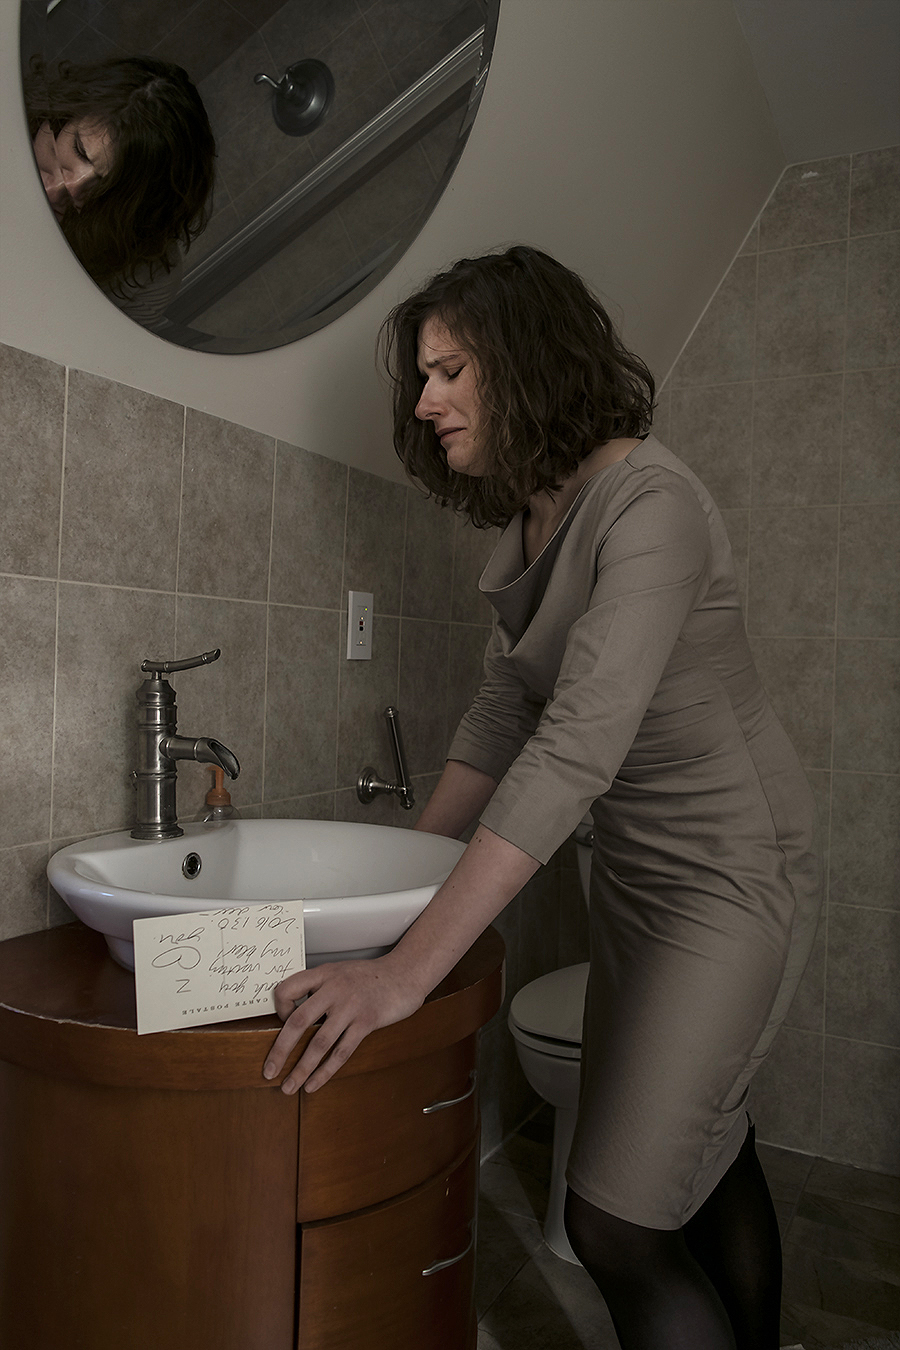 Leniqueca_Welcome_Portraiture_Lise_JeSuis_Deloate_Distant_Love_Crying_fullbody_Bathroom_weeping_sorrow_love_lost